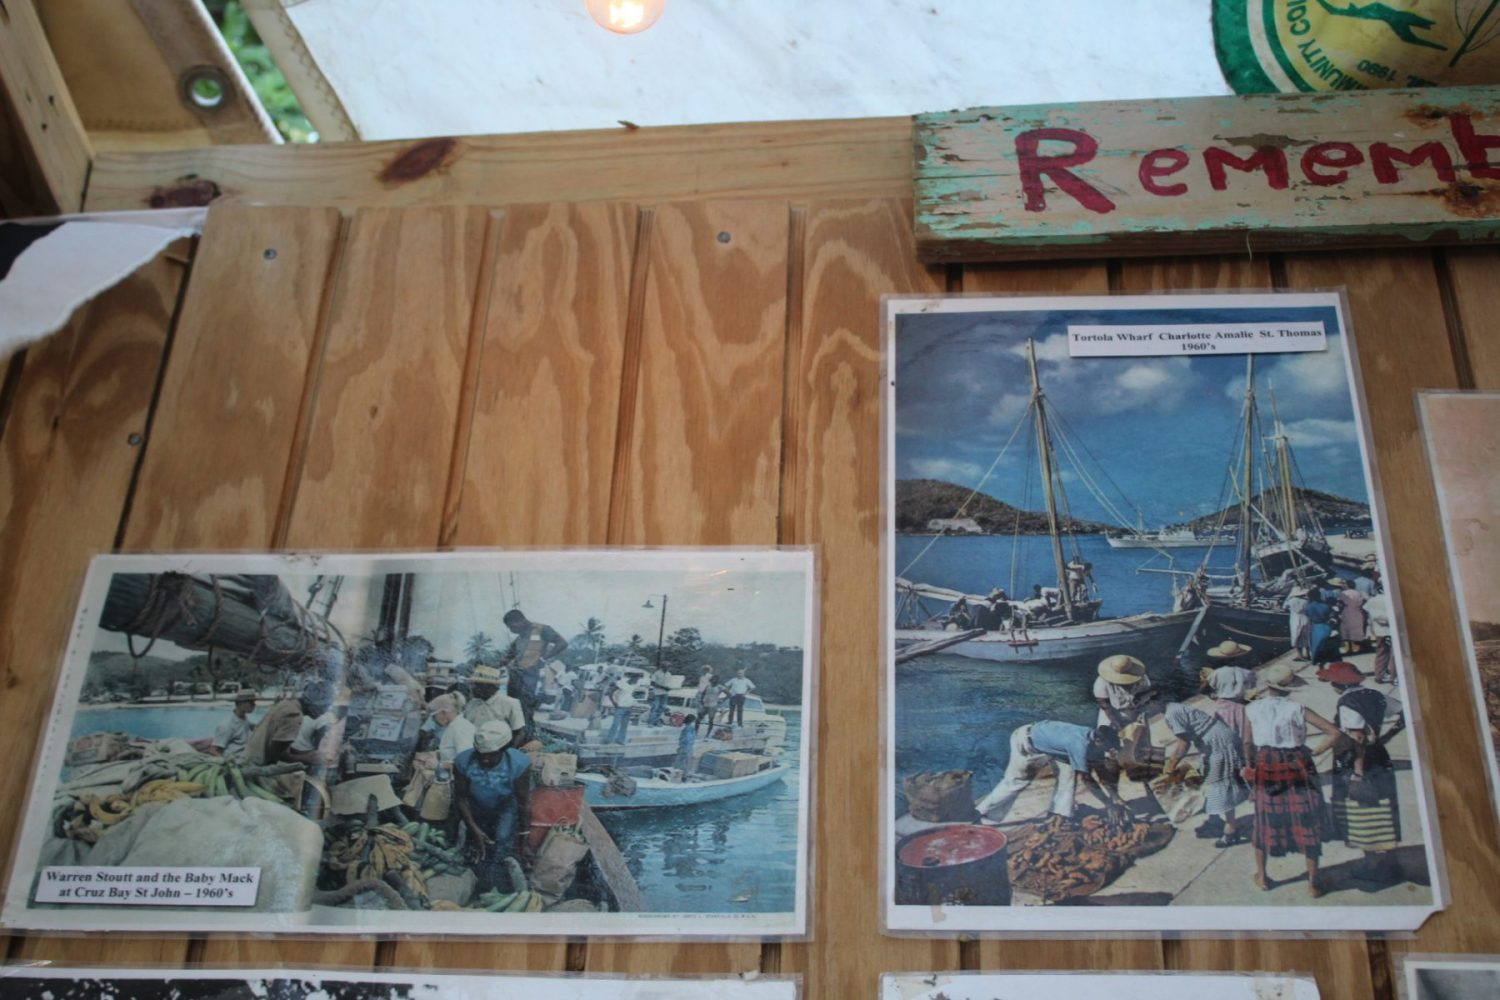 old photographs in a wooden boat workshop